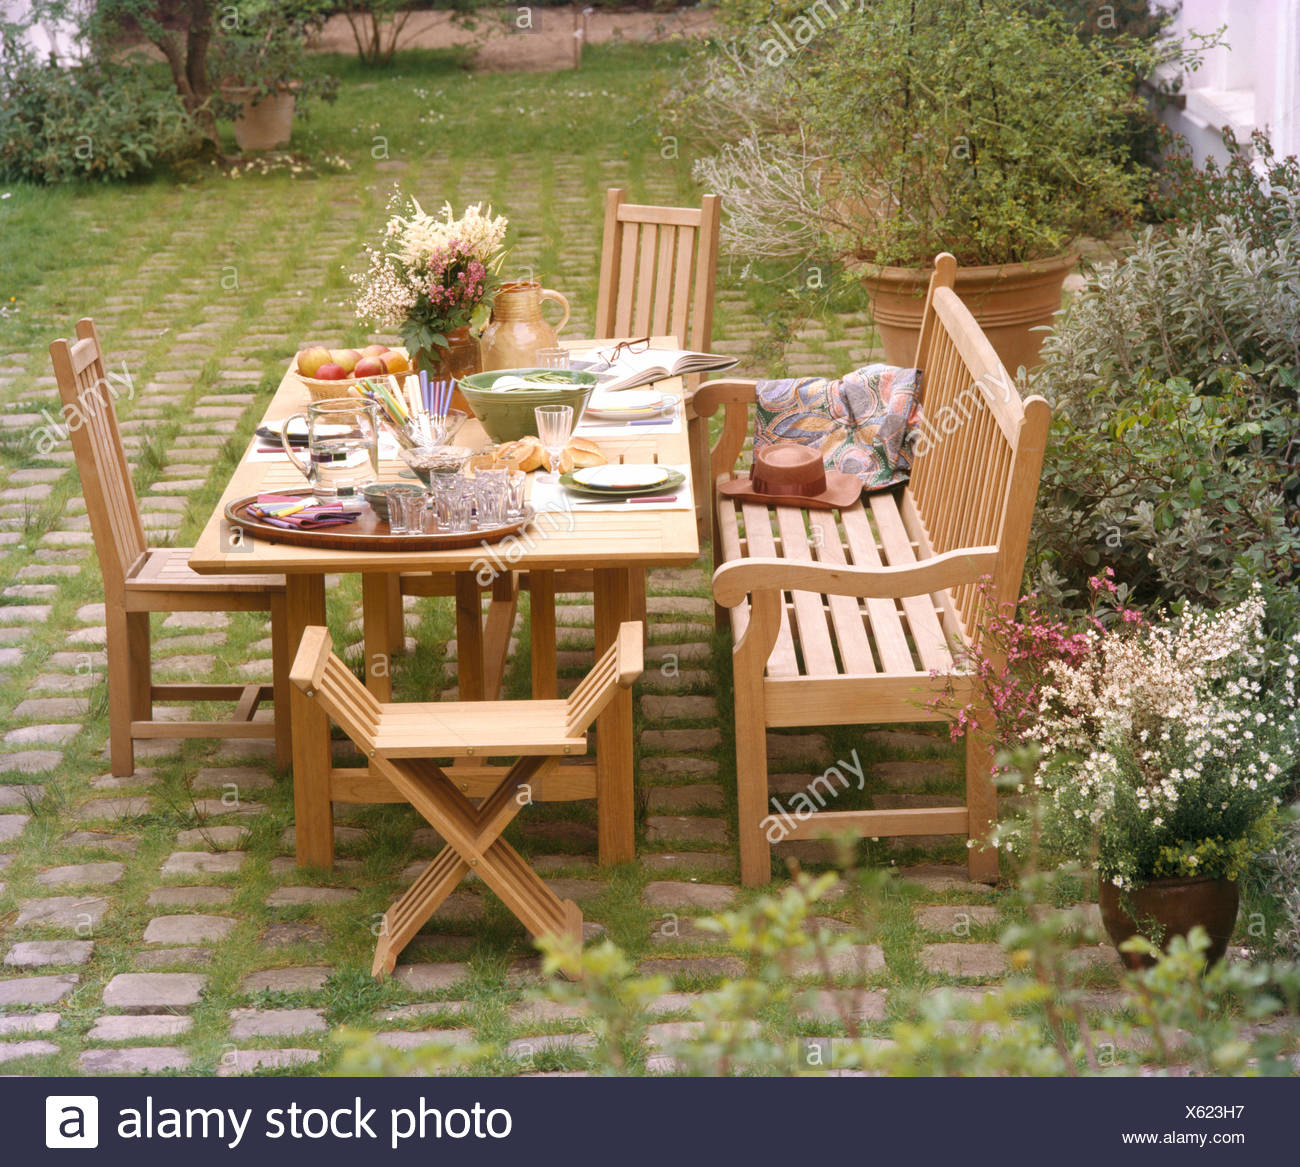 Superb Wooden Bench And Chairs At Table Set For Lunch On Patio In Pabps2019 Chair Design Images Pabps2019Com